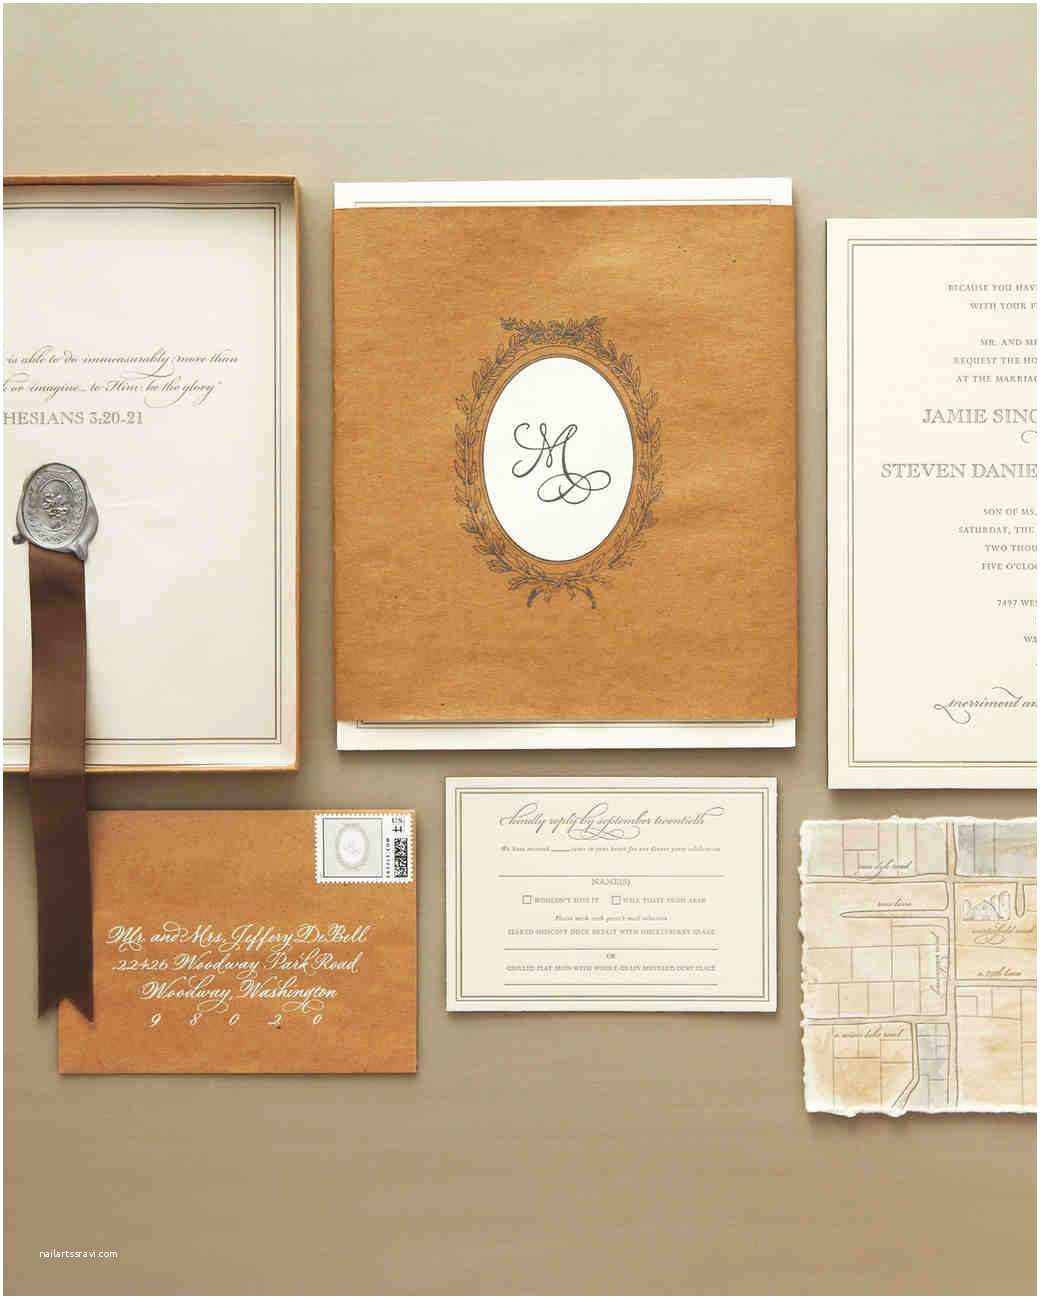 Invisible Ink Wedding Invitations the Best Wedding Invitation Etiquette Tips You Must Know